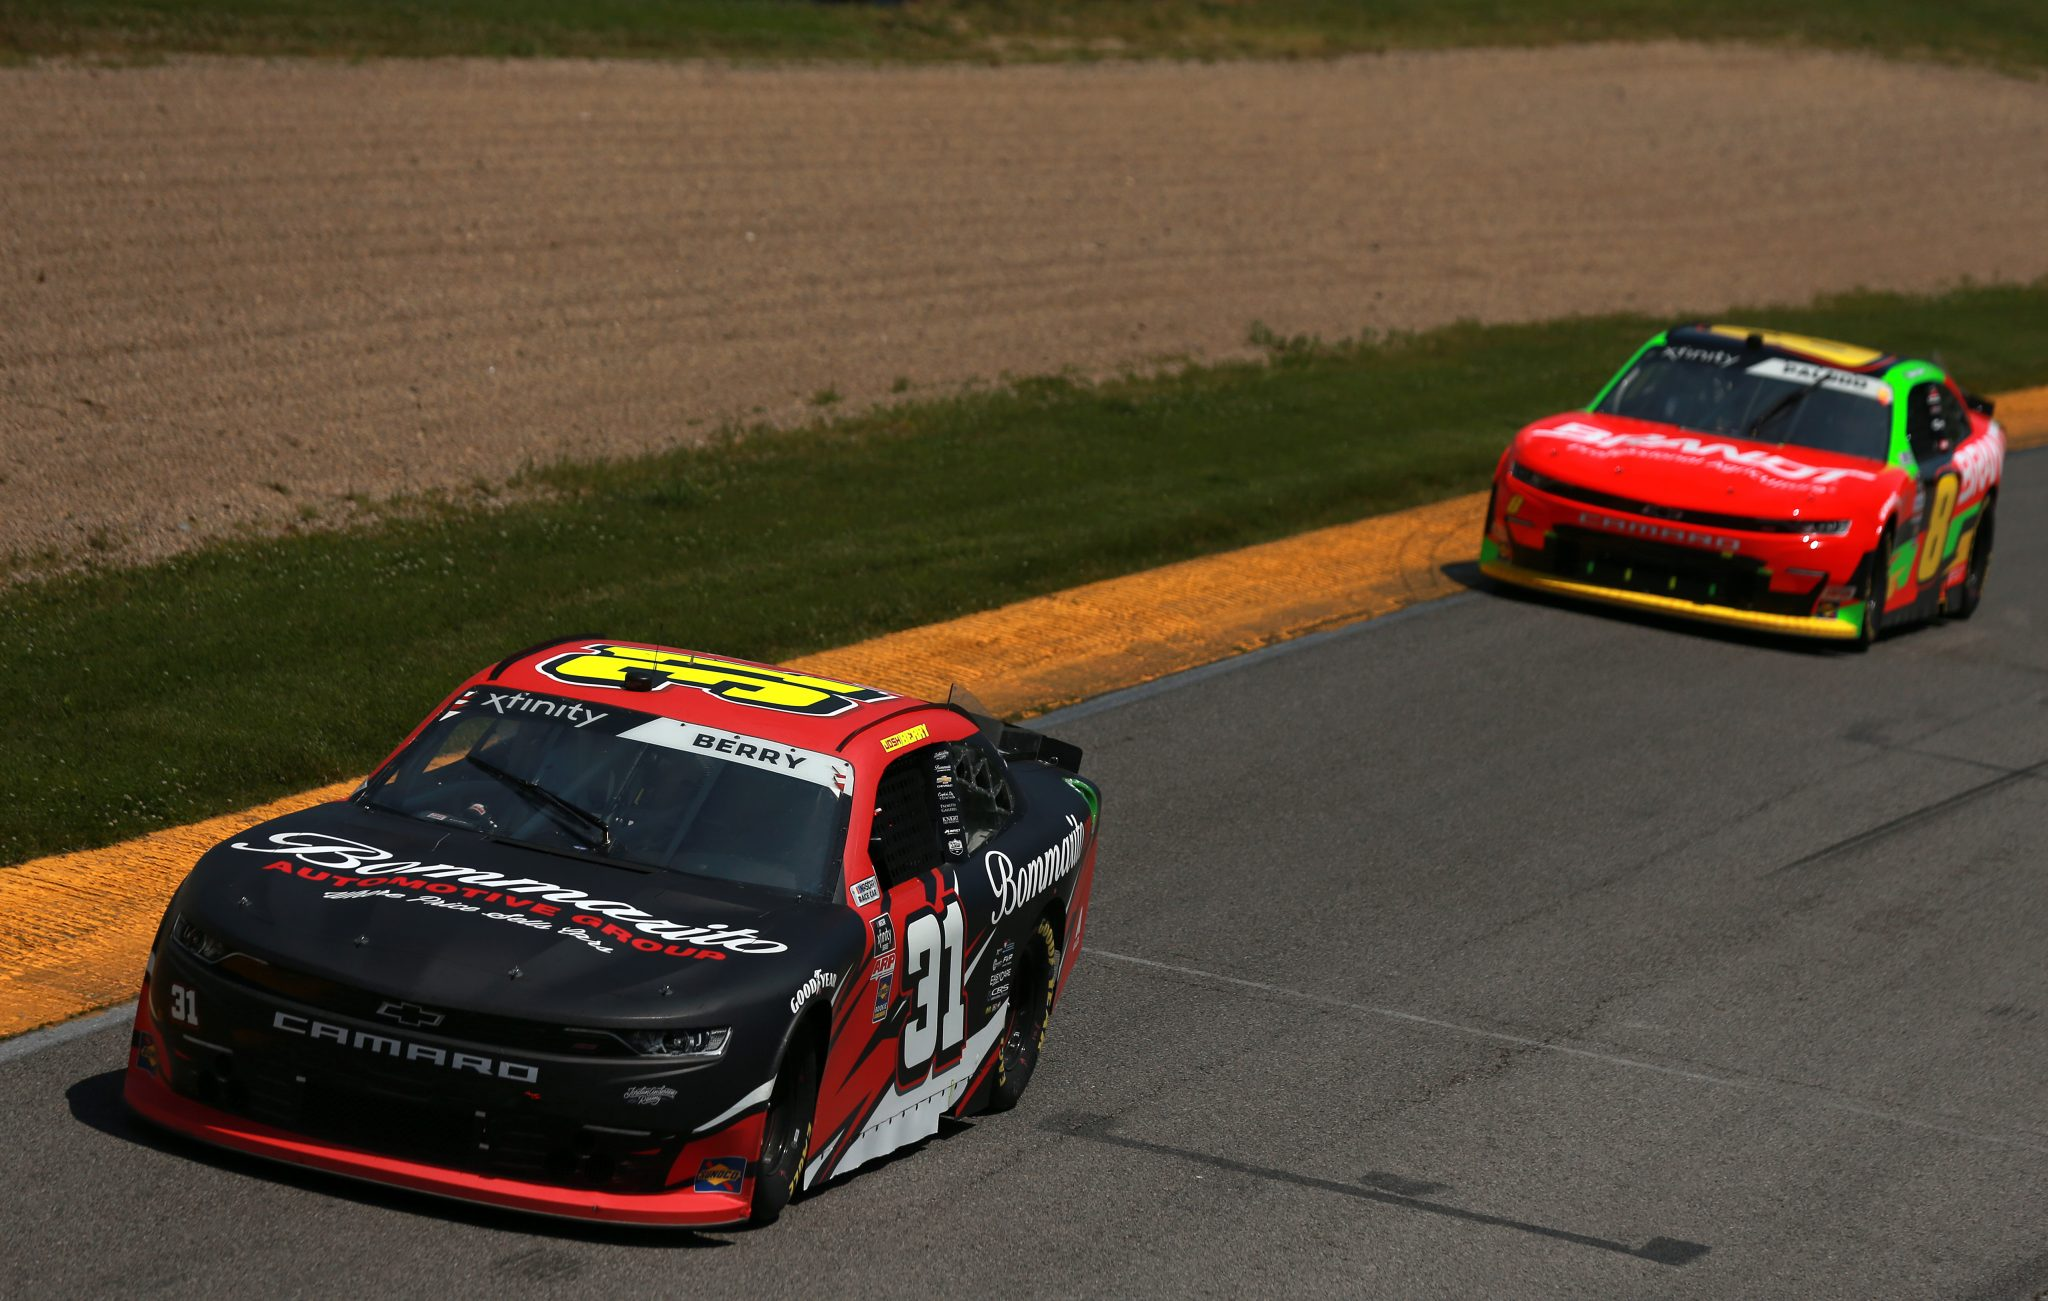 LEXINGTON, OHIO - JUNE 05: Josh Berry, driver of the #31 Bommarito Automotive Group Chevrolet, and Miguel Paludo, driver of the #8 BRANDT Chevrolet, race during the NASCAR Xfinity Series B&L Transport 170 at Mid-Ohio Sports Car Course on June 05, 2021 in Lexington, Ohio. (Photo by Sean Gardner/Getty Images) | Getty Images